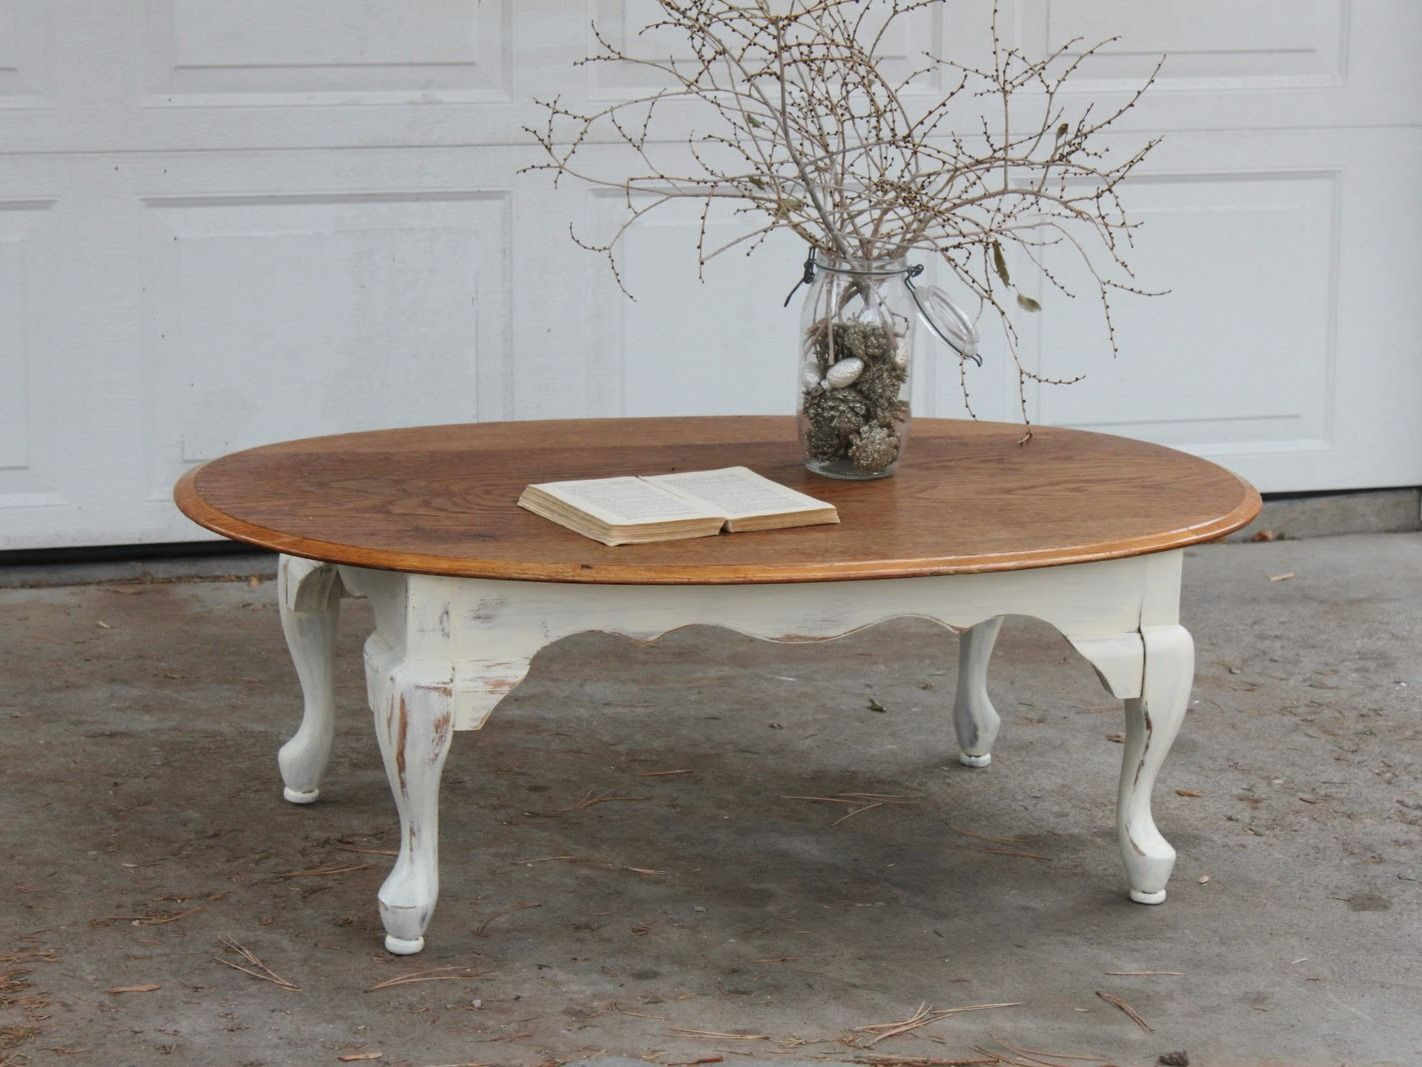 Lovely Round Coffee Table 595 00 Ooak Thebellacottage Shabbychic Shabby Chic Coffee Table Round Coffee Table Coffee Table [ 1400 x 1400 Pixel ]